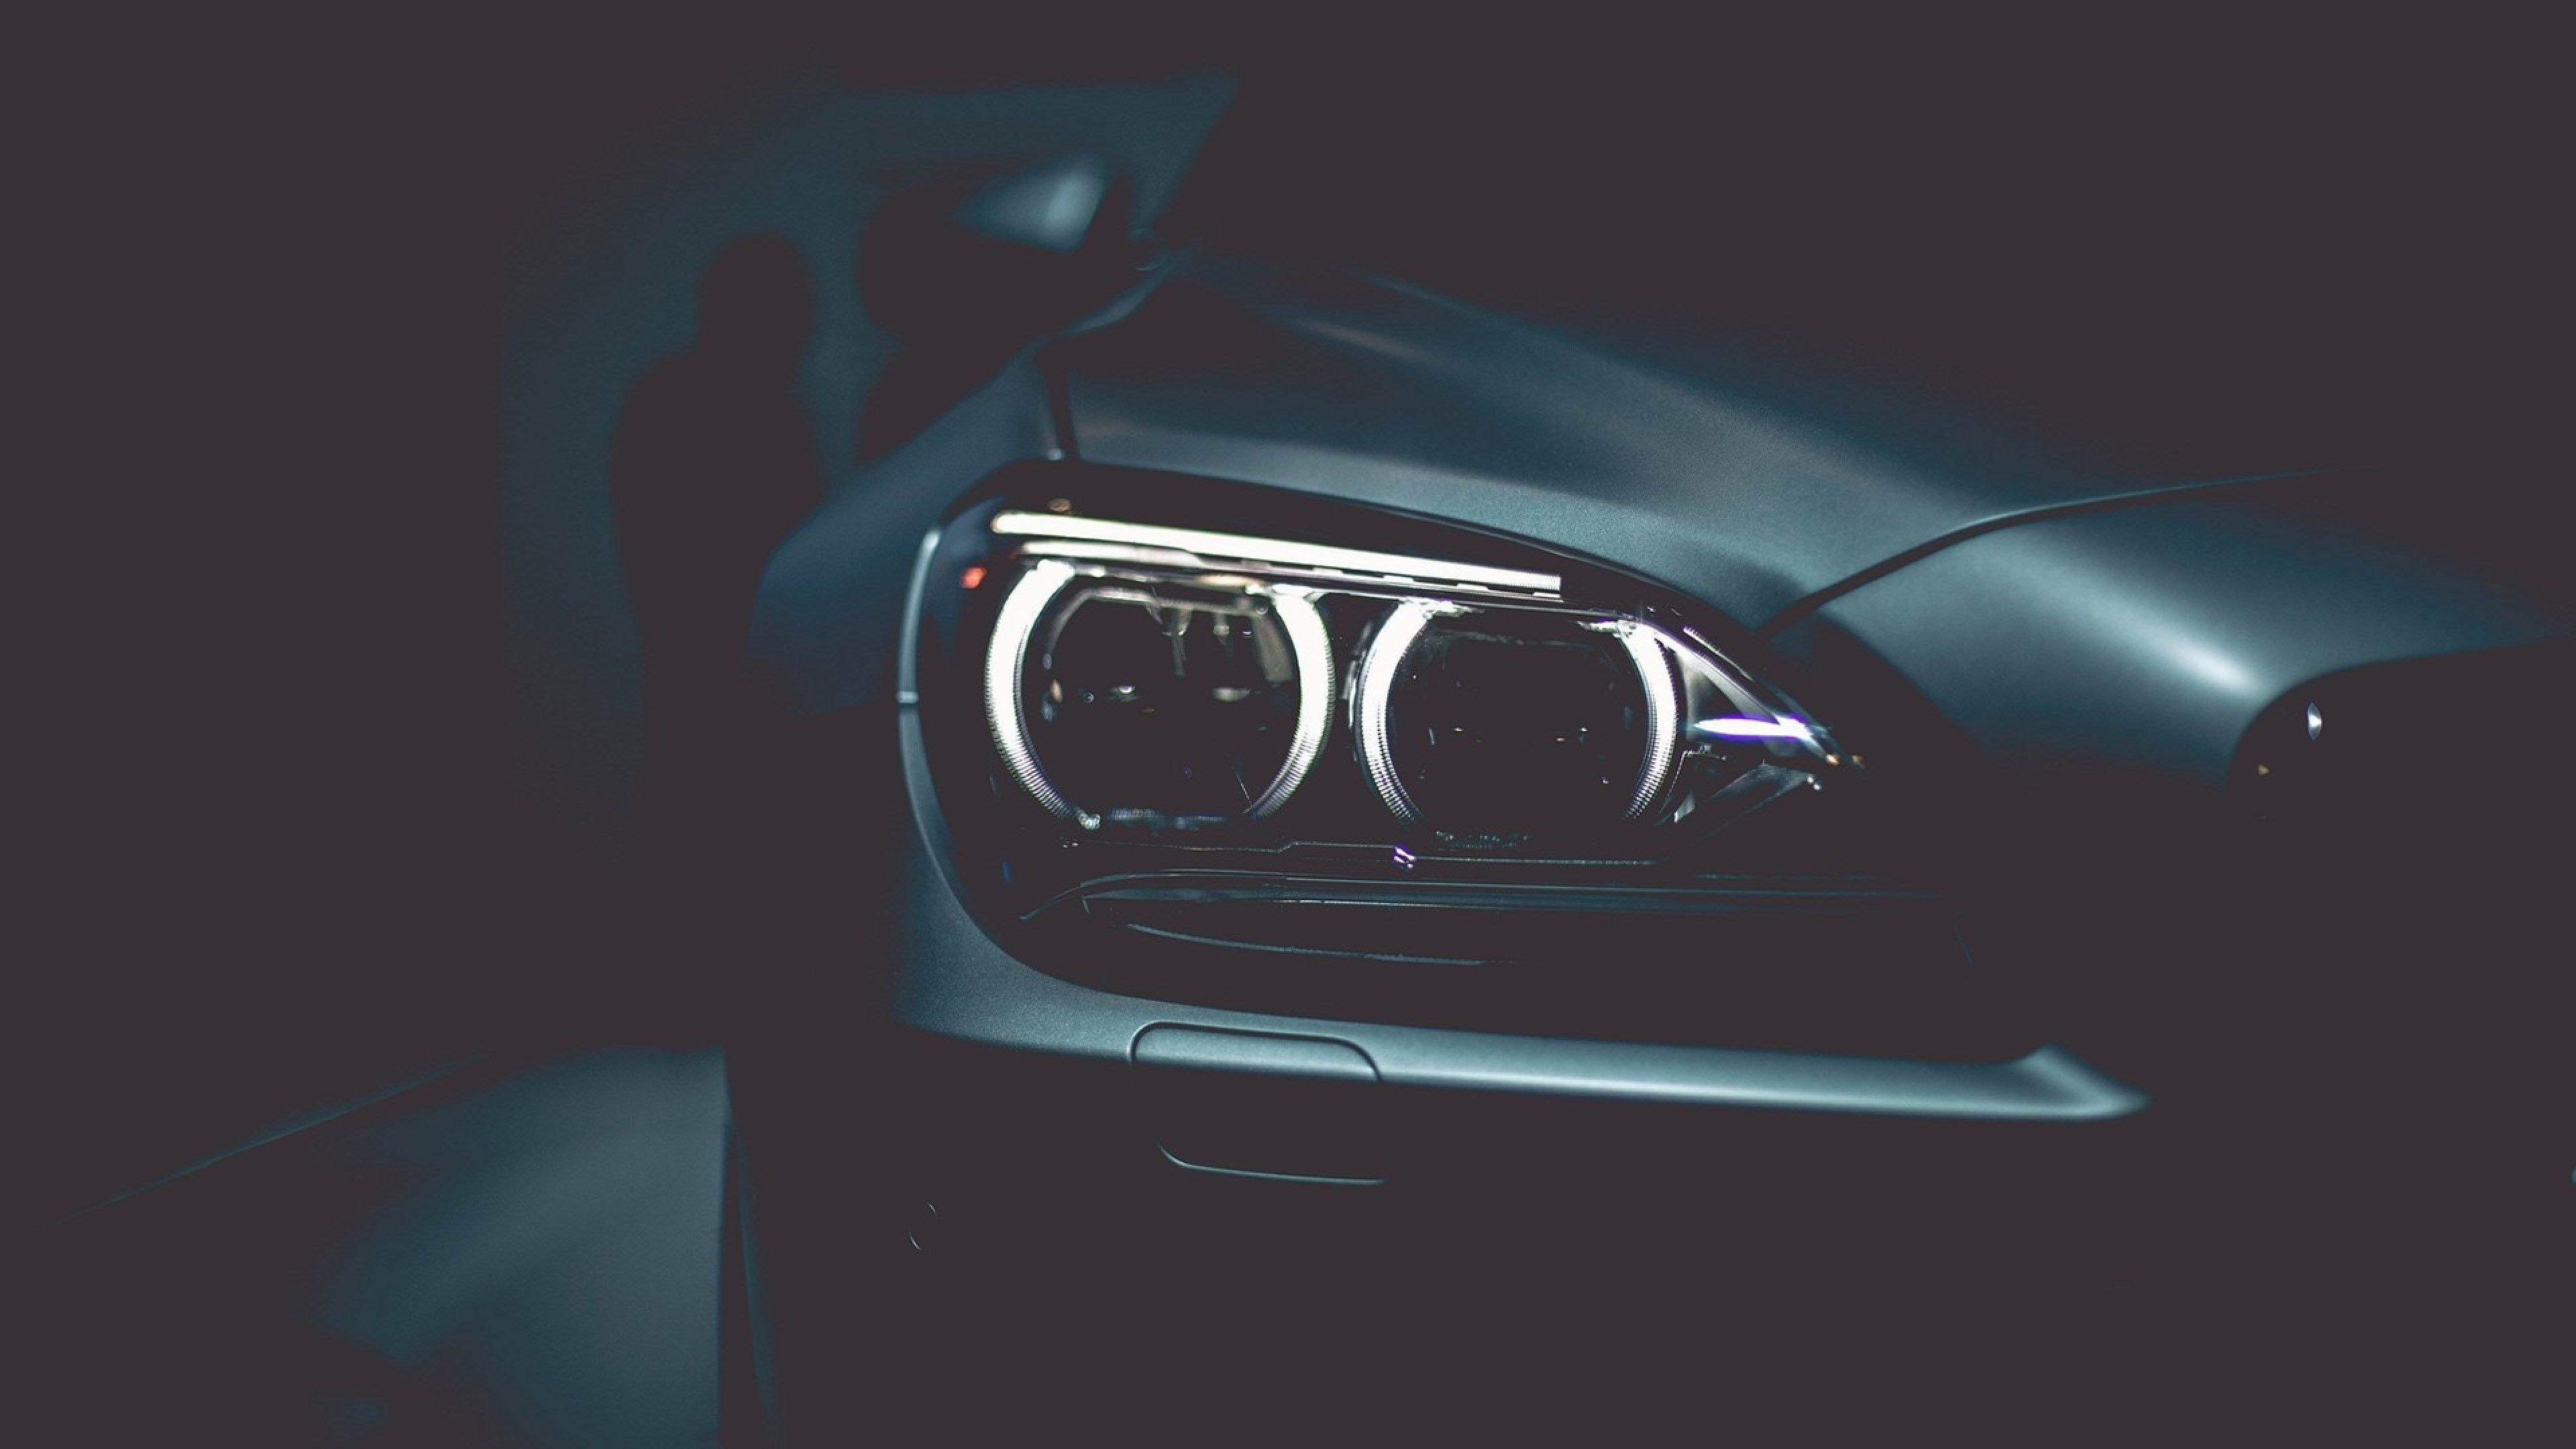 3840x2160 Bmw 4k Full Hd Wallpaper With Images Bmw Wallpapers Car Headlights Car Wallpapers